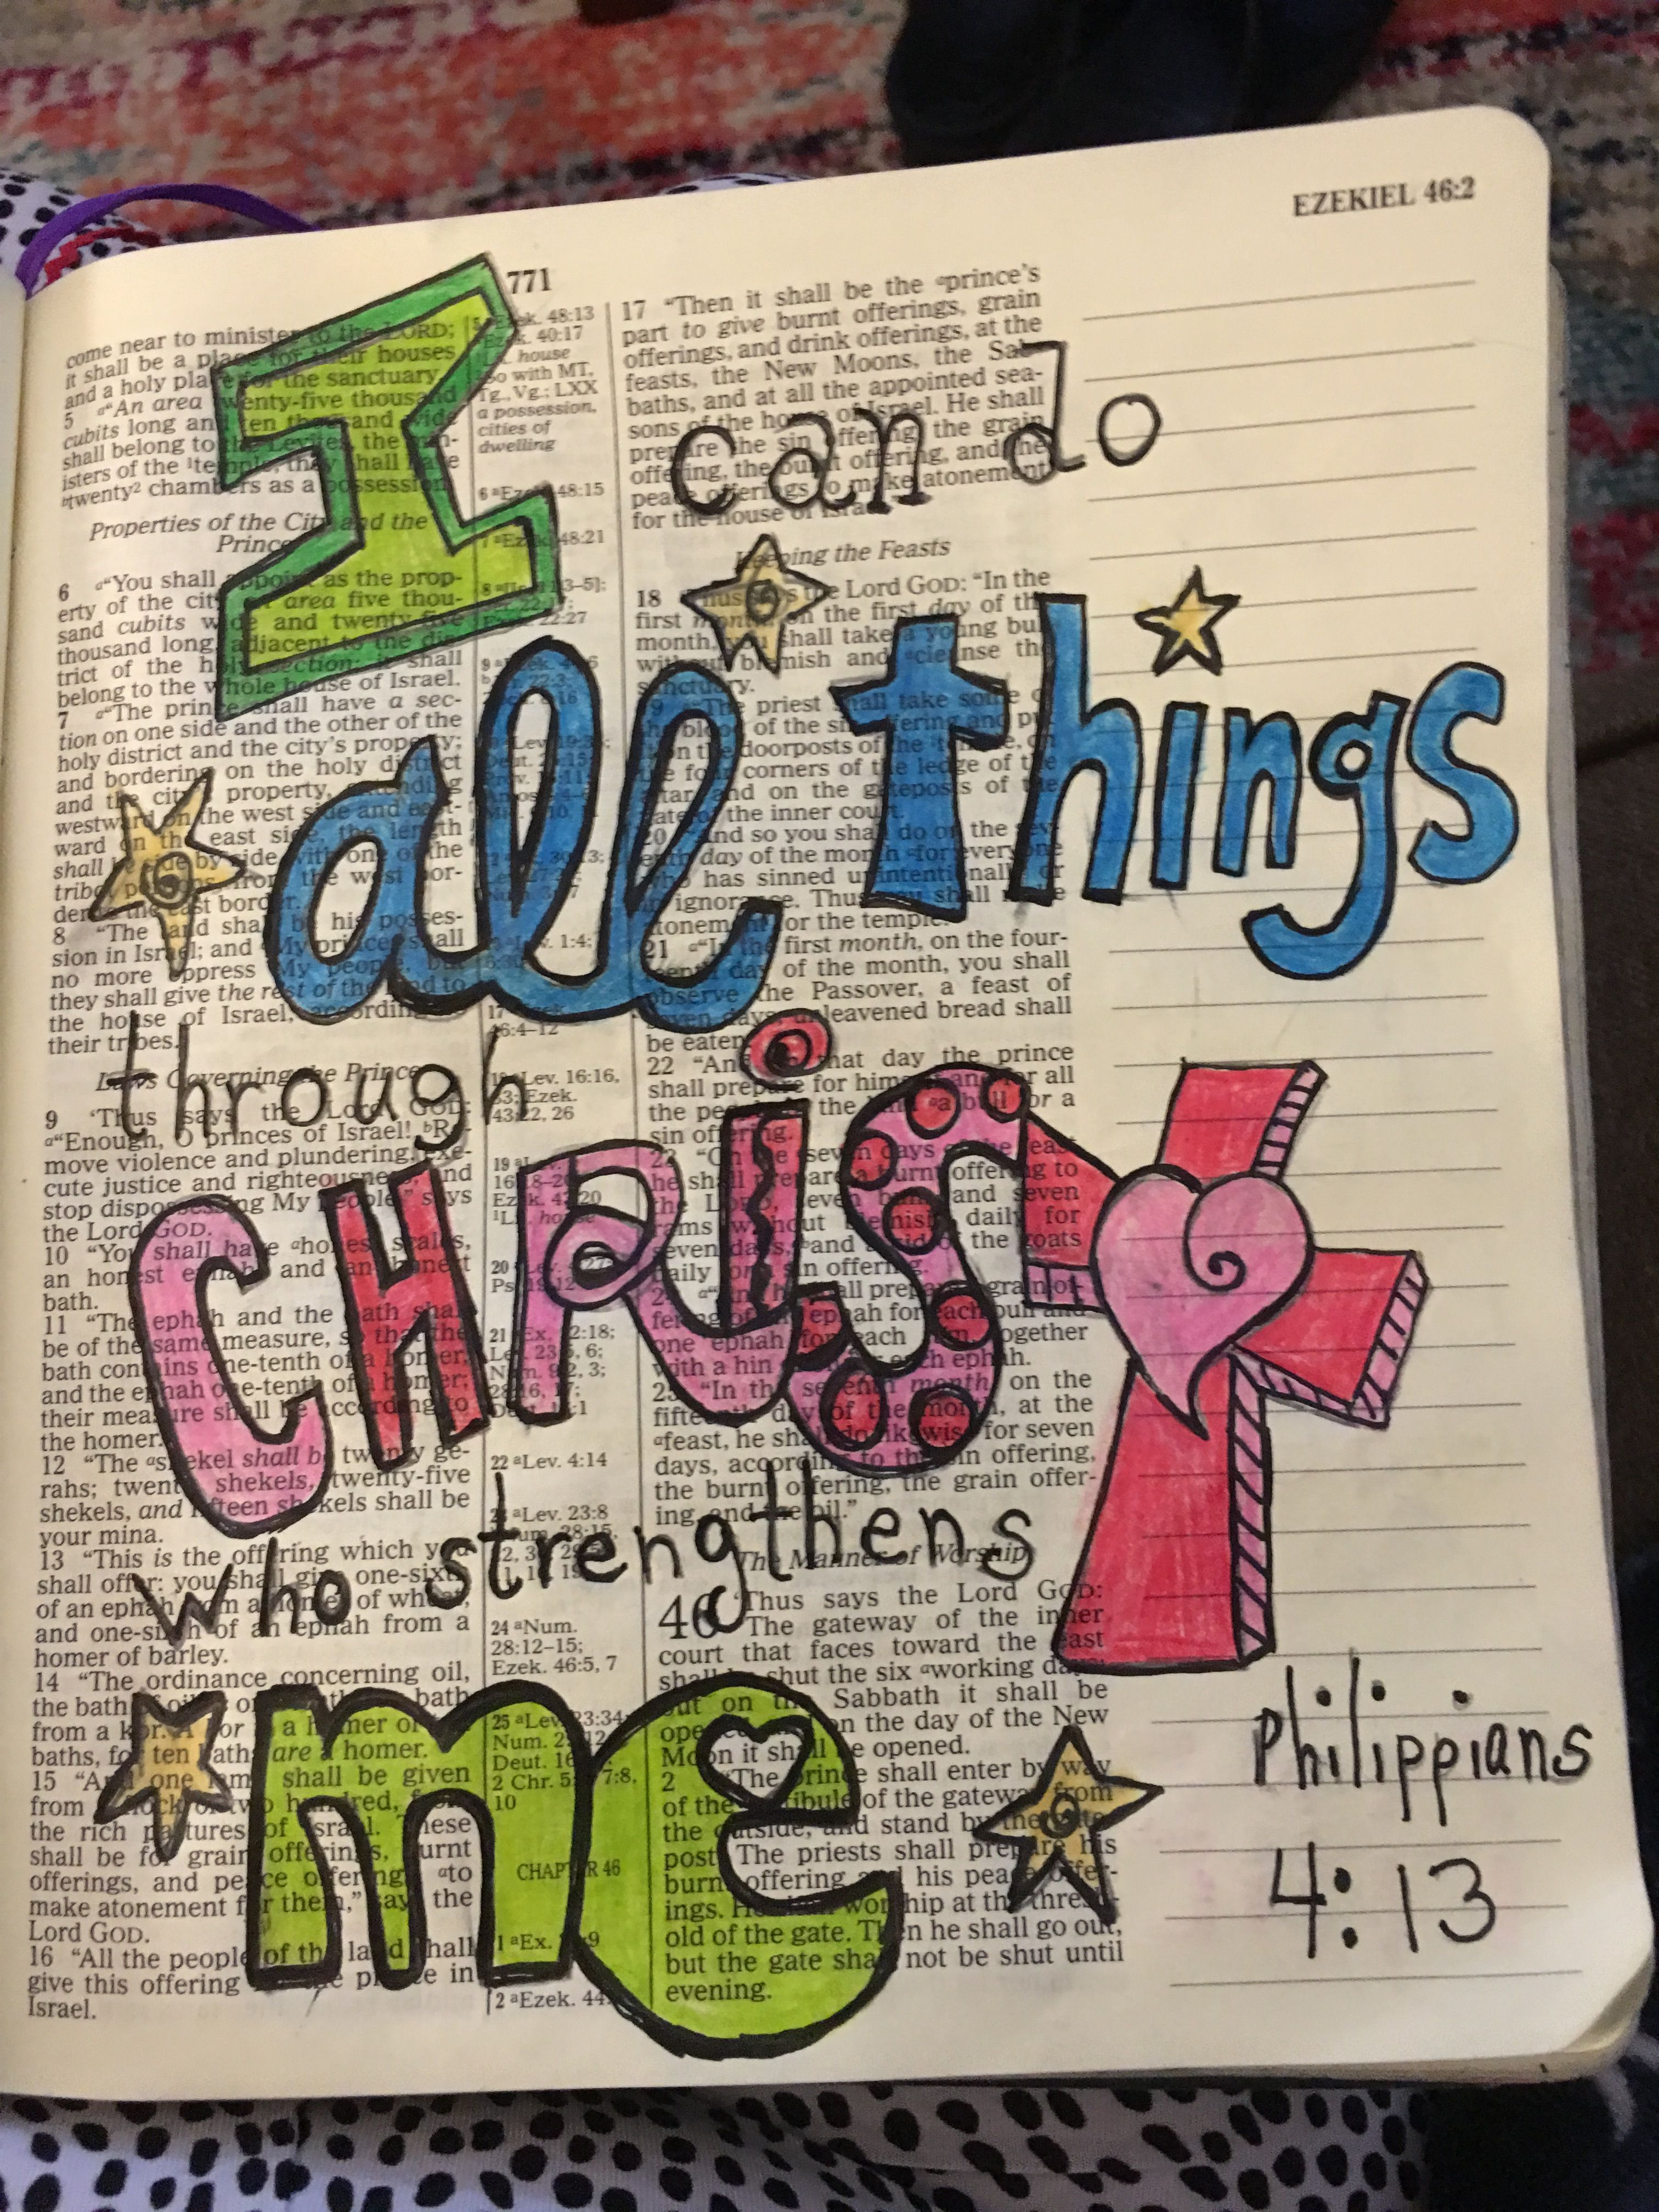 I Can Do All Things Through Christ Who Strengthens Me